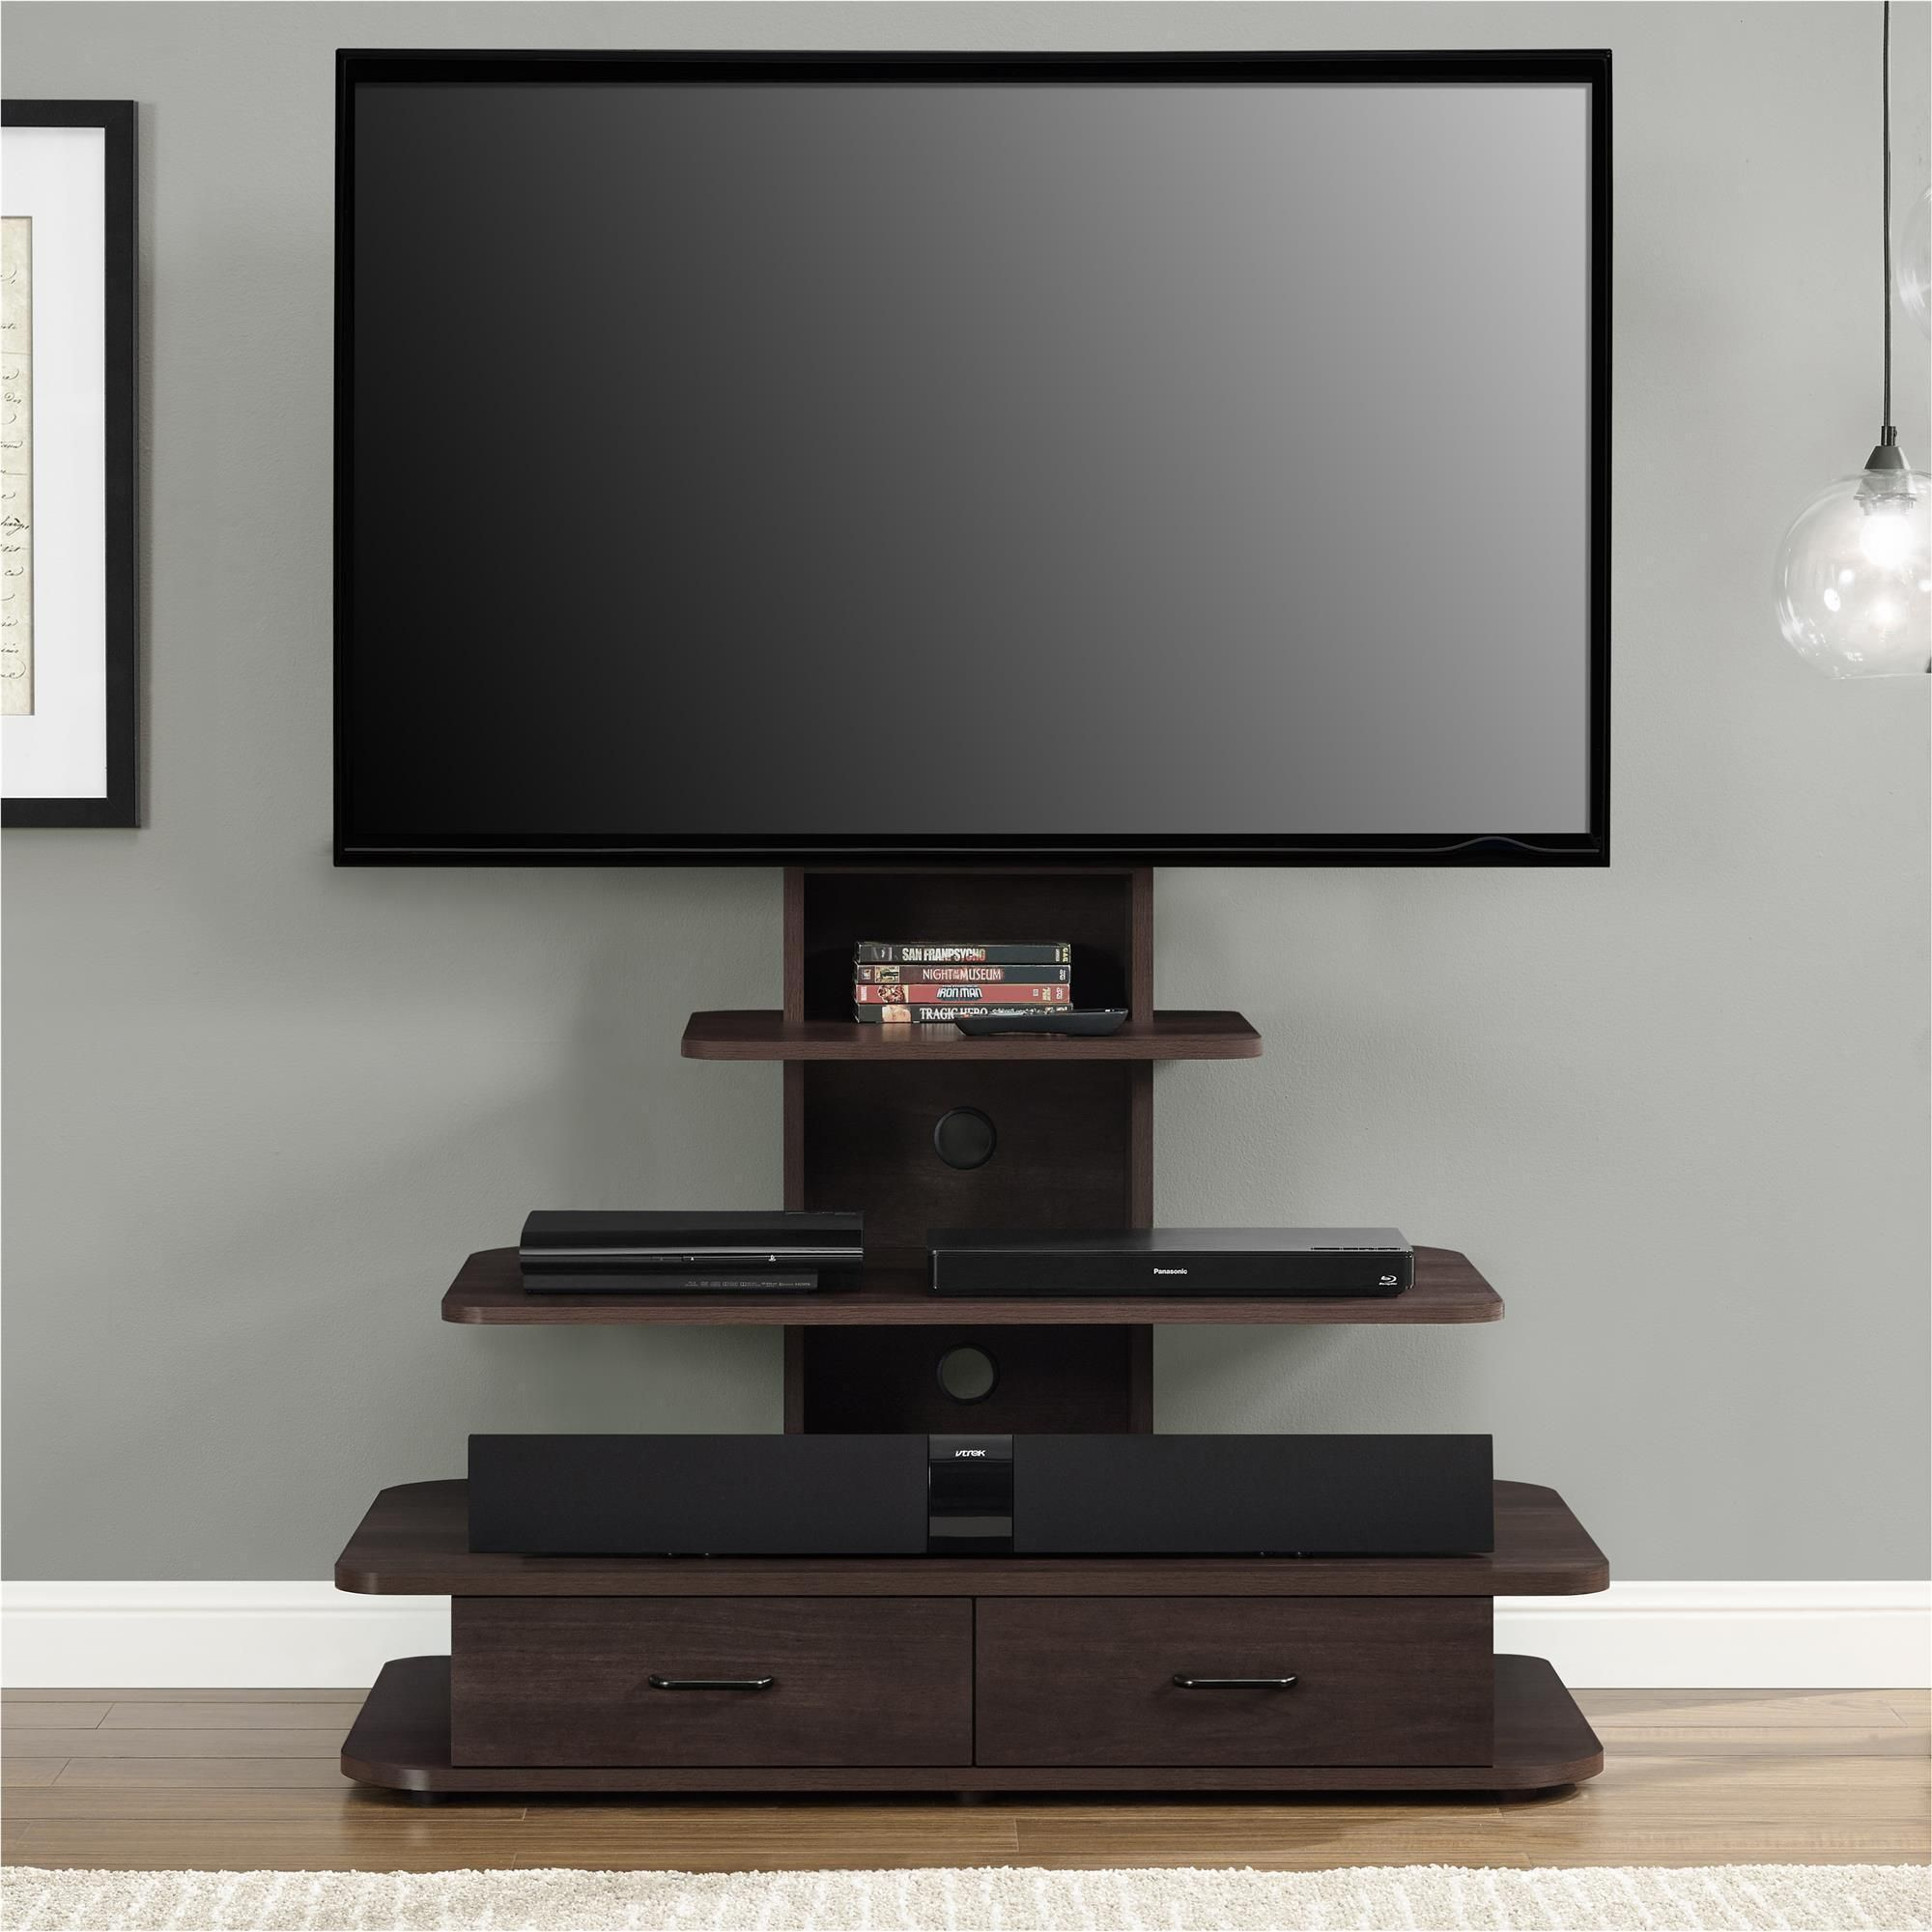 70 Inch TV Stand for Home Theater   Home Design Ideas   Pinterest ...